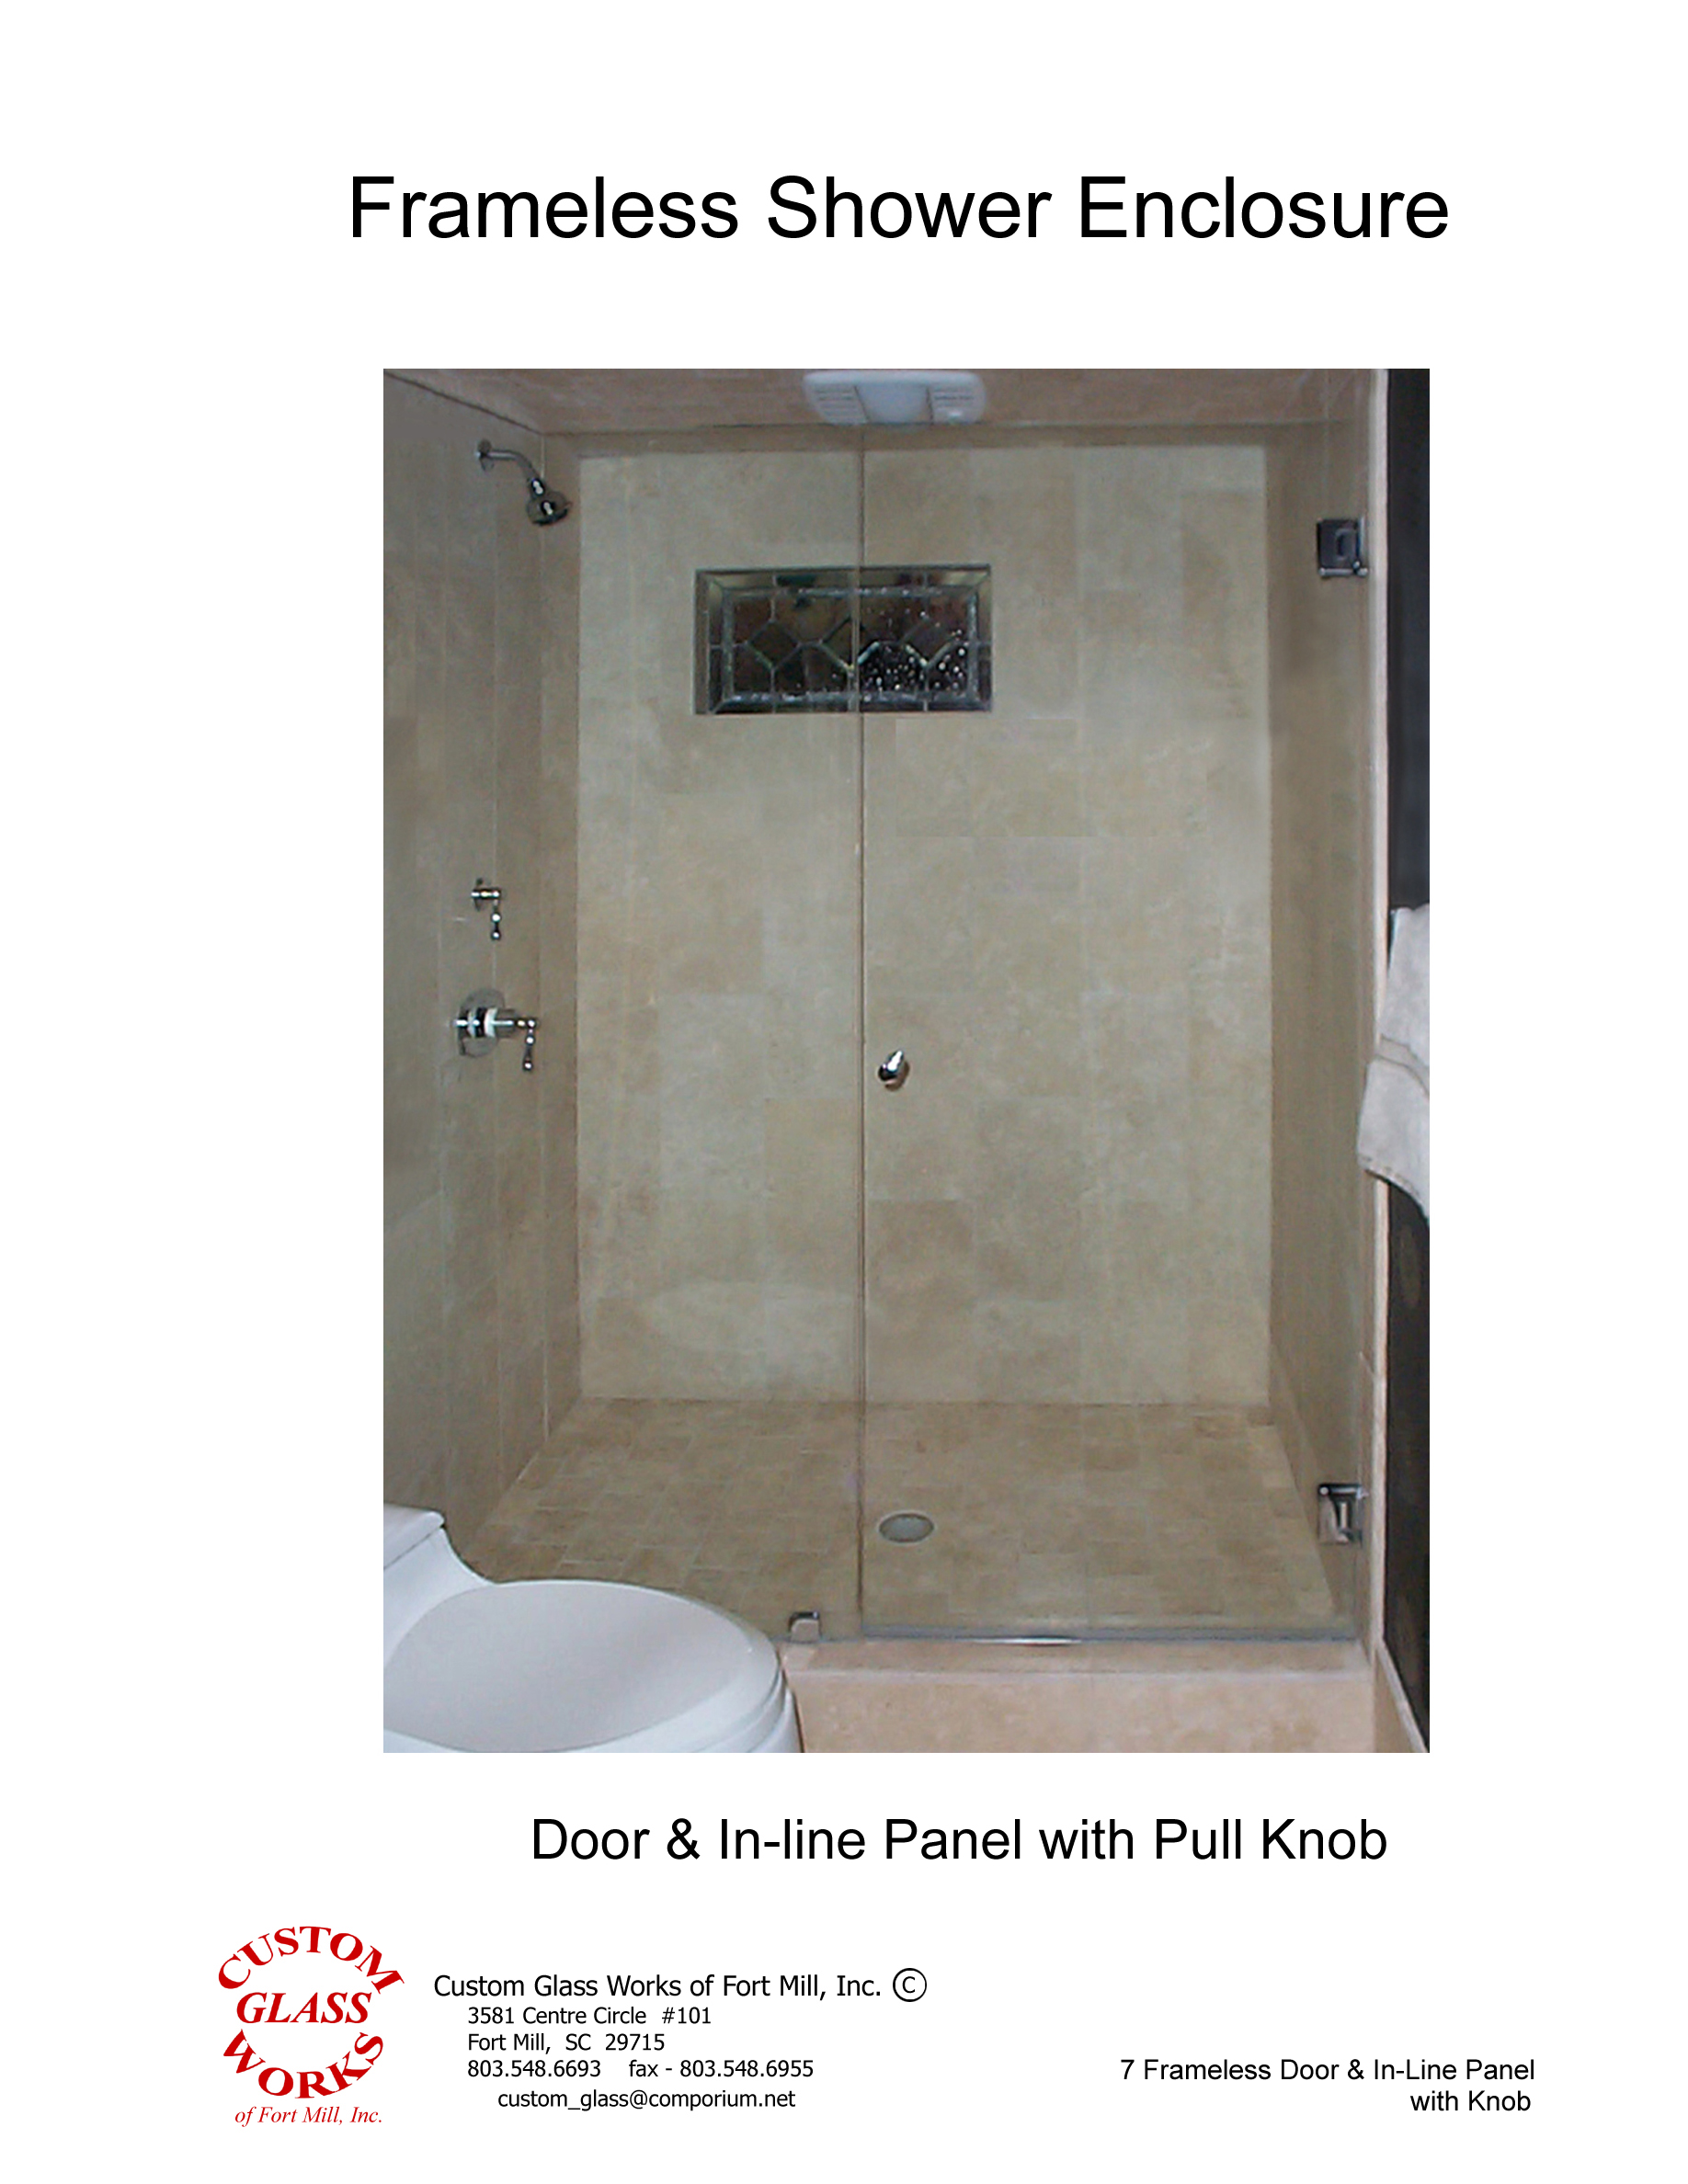 7 Frameless Door & In-Line Panel with Knob